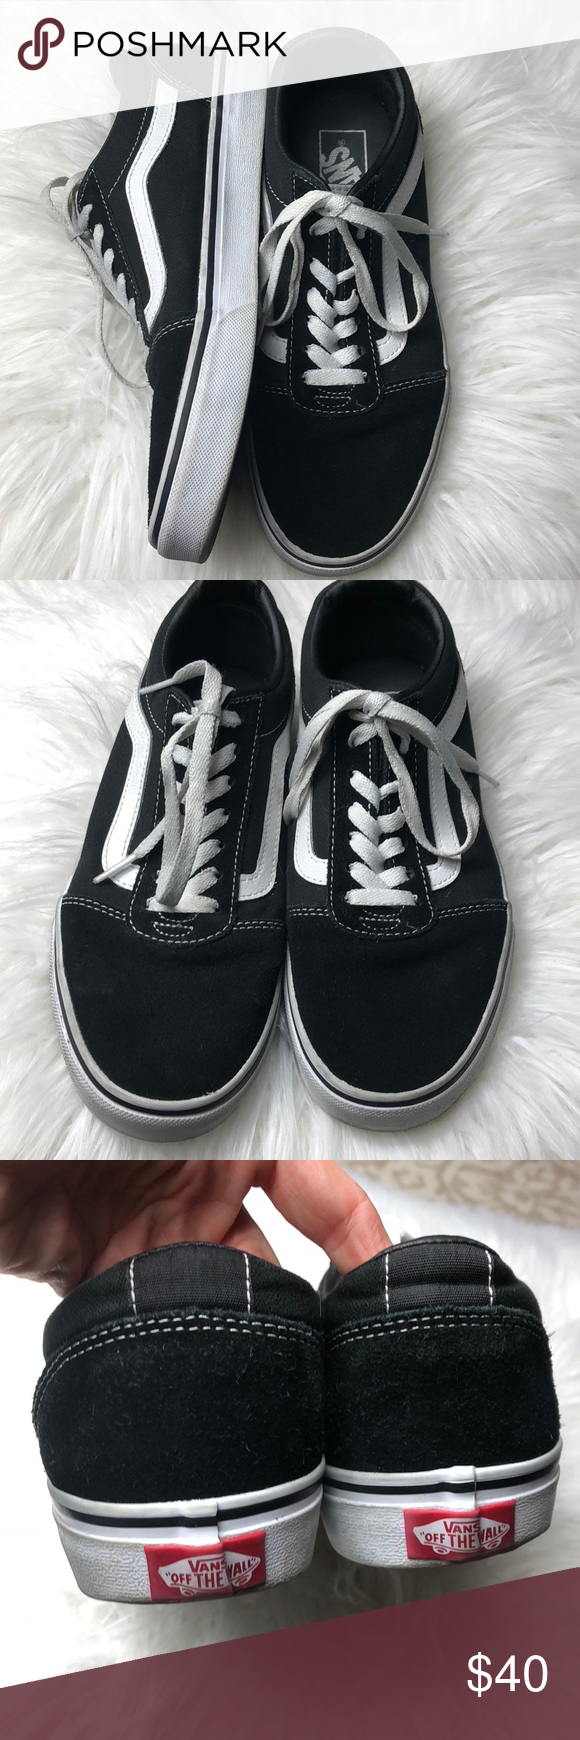 are vans ward and old skool the same